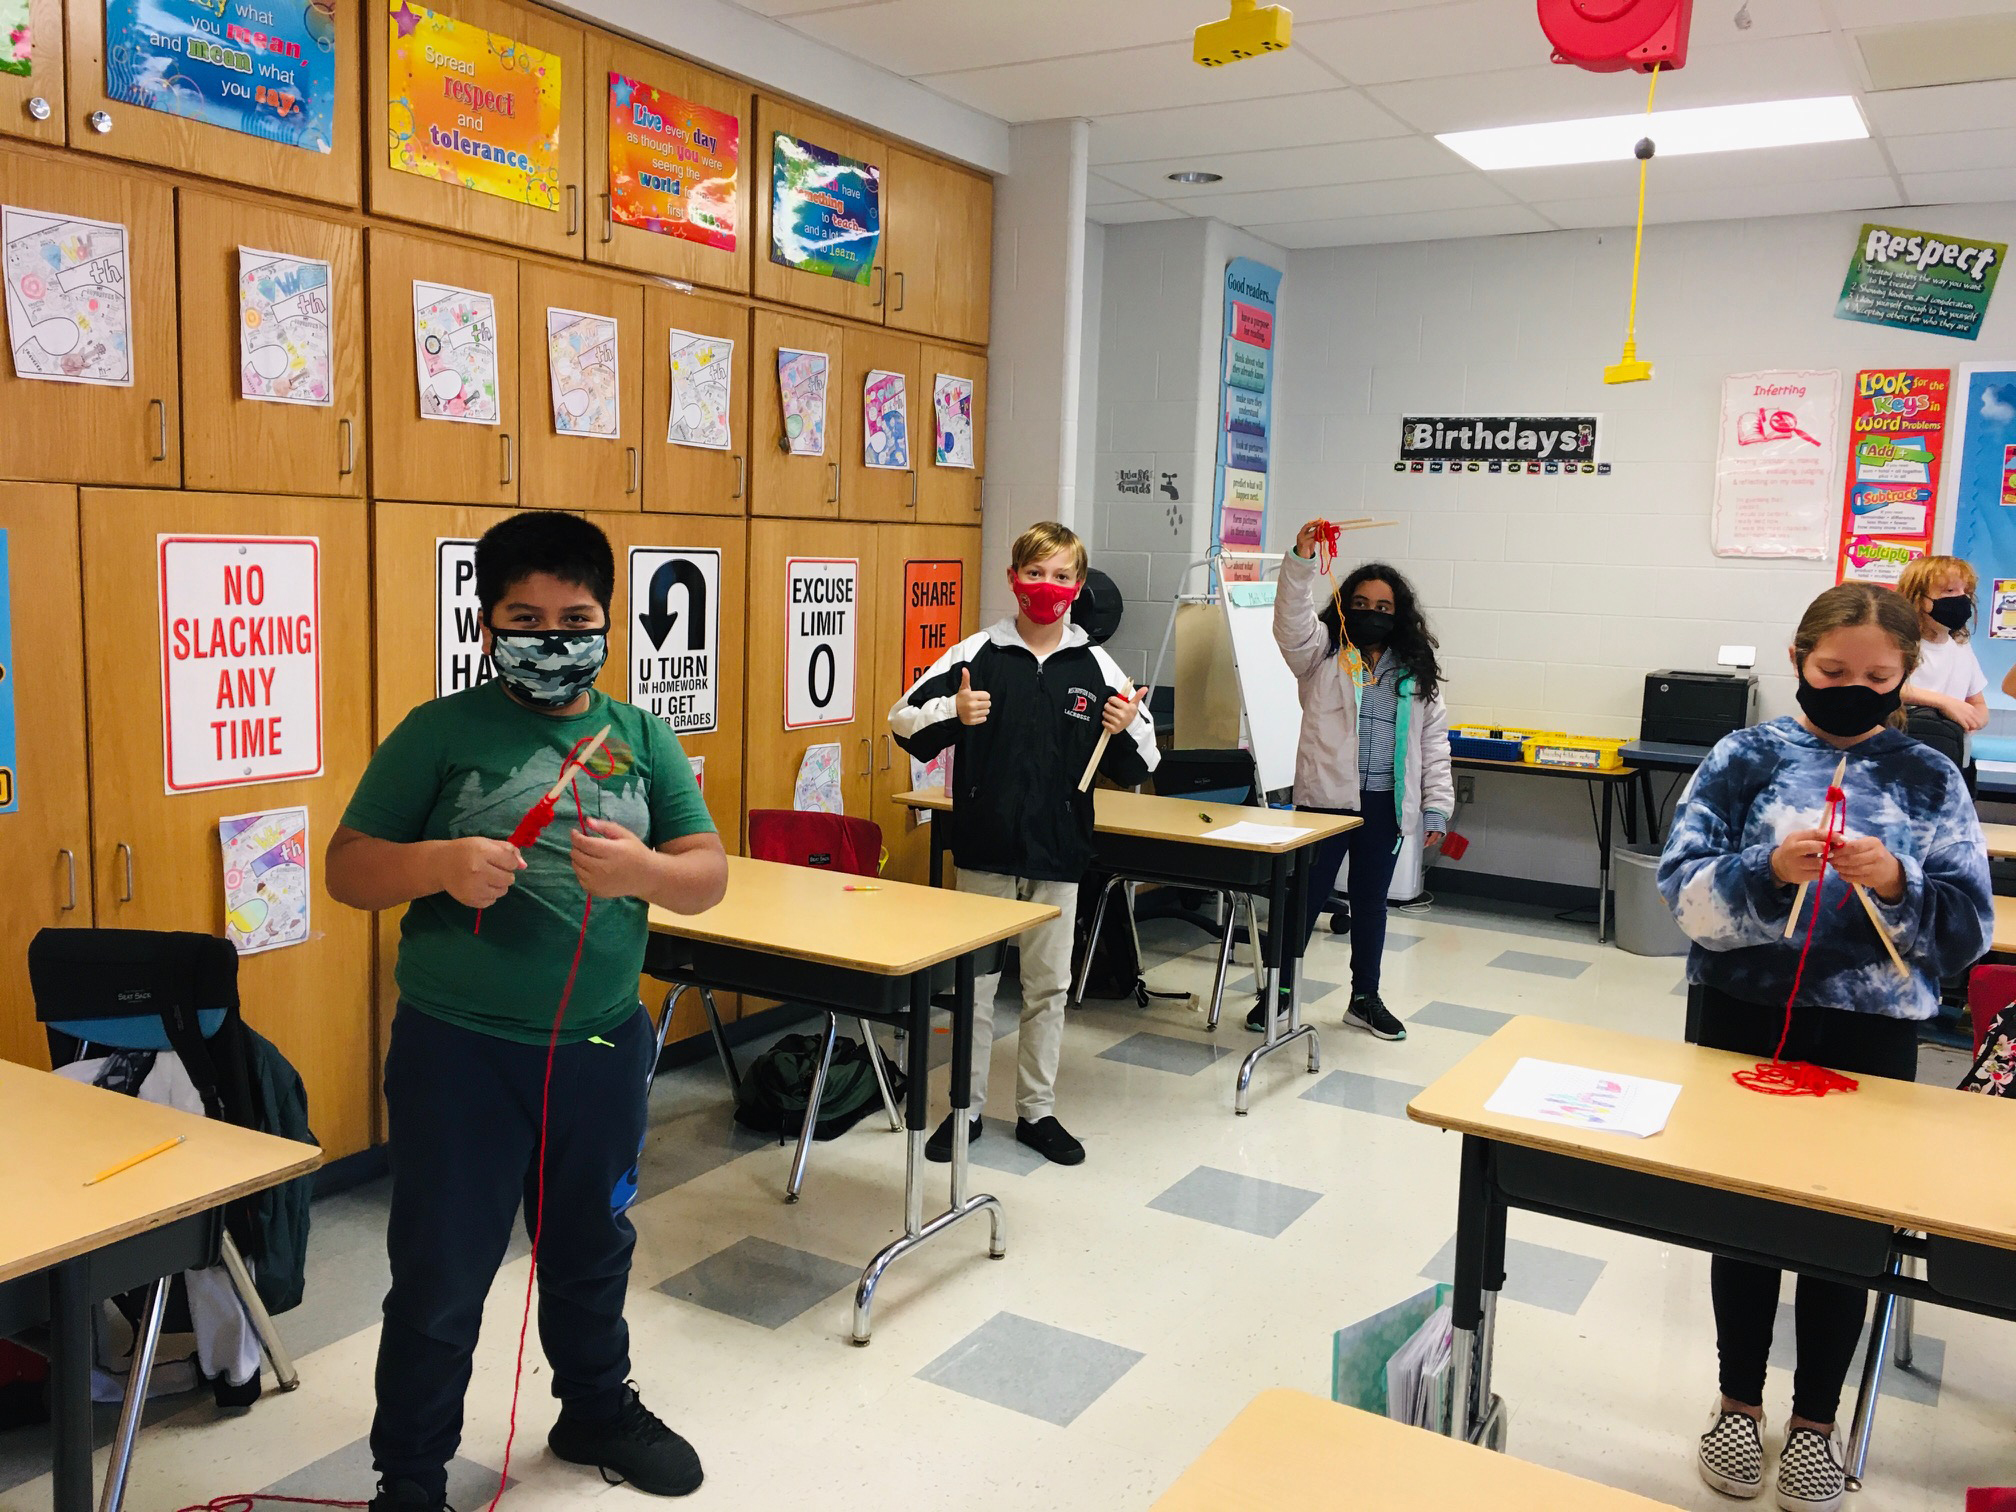 Westhampton Beach Elementary School fifth graders learned to knit as part of an art project.